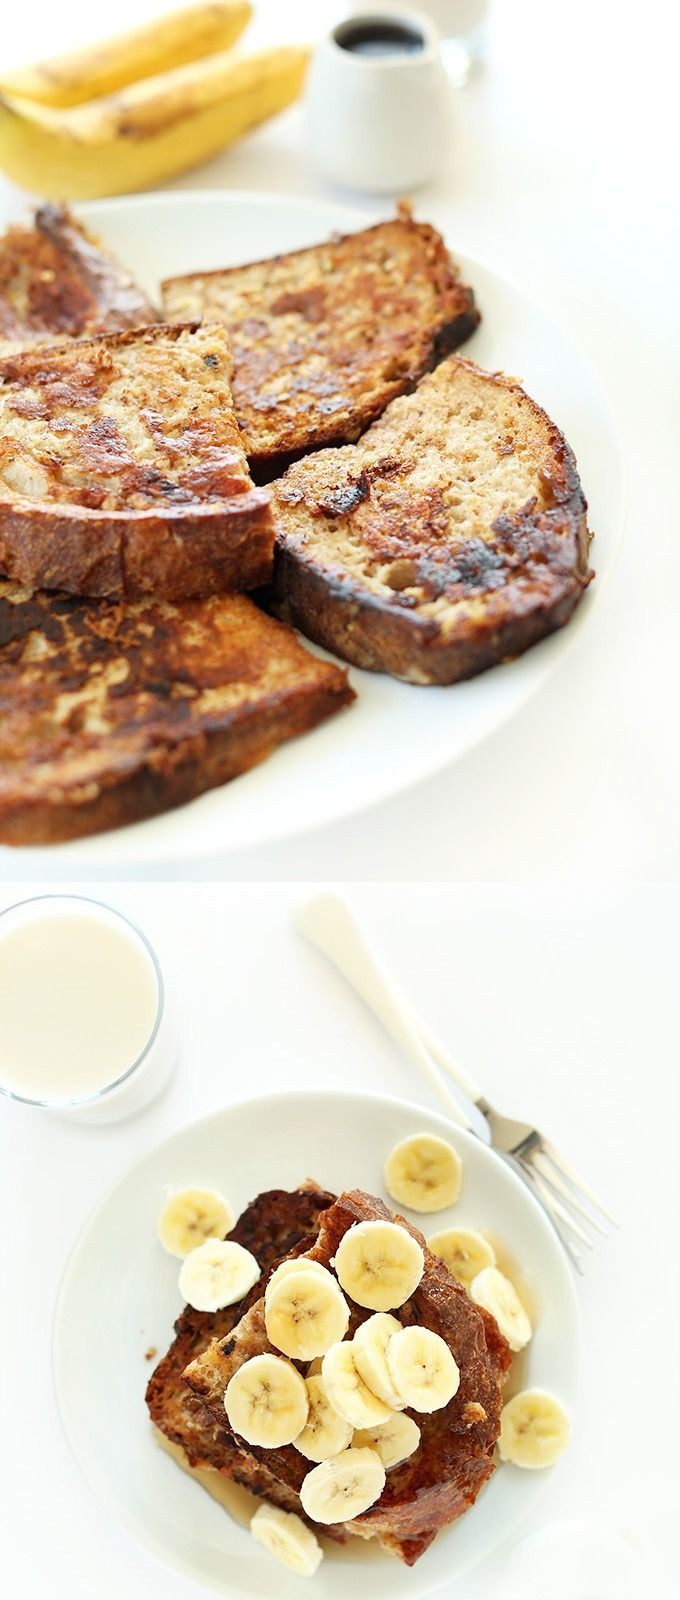 5 Ingredient Vegan Banana French Toast! So simple, healthy and mega moist and flavorful. #vegan #breakfast #frenchtoast #healthy: Entir Houses, Houses Smell, House Smells